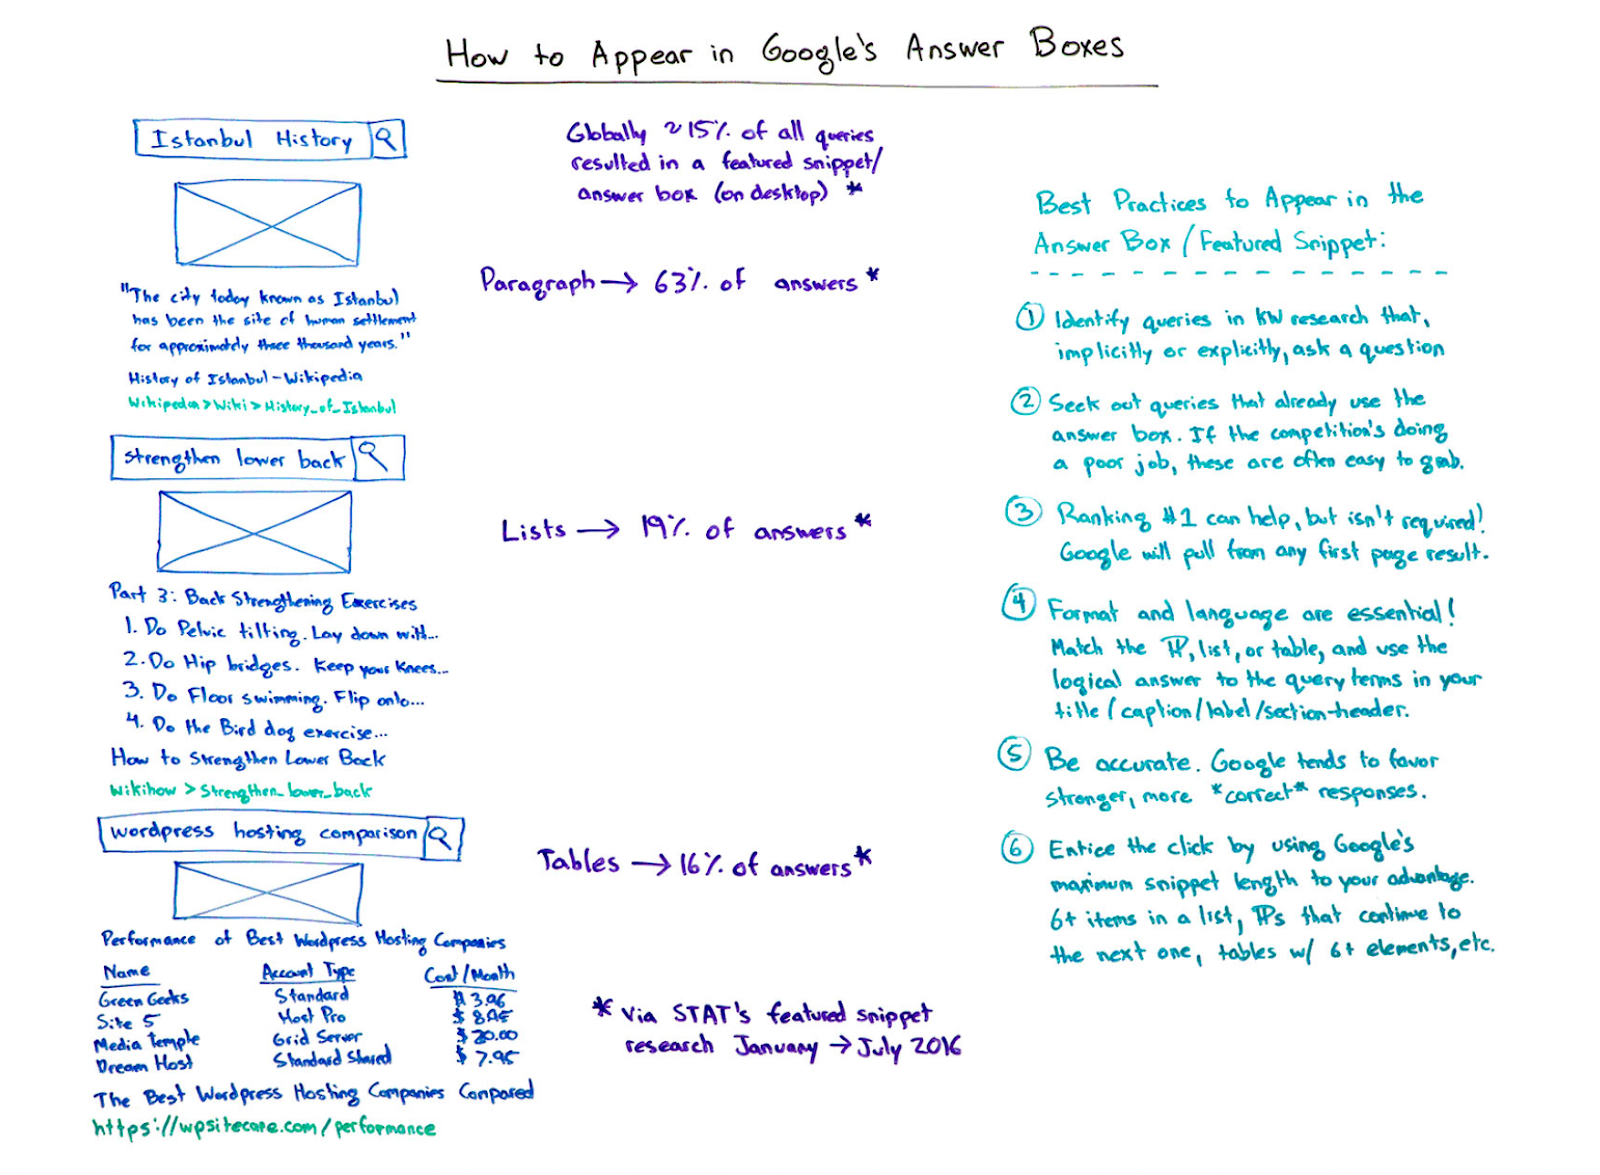 How to get your page featured as an Answer Box